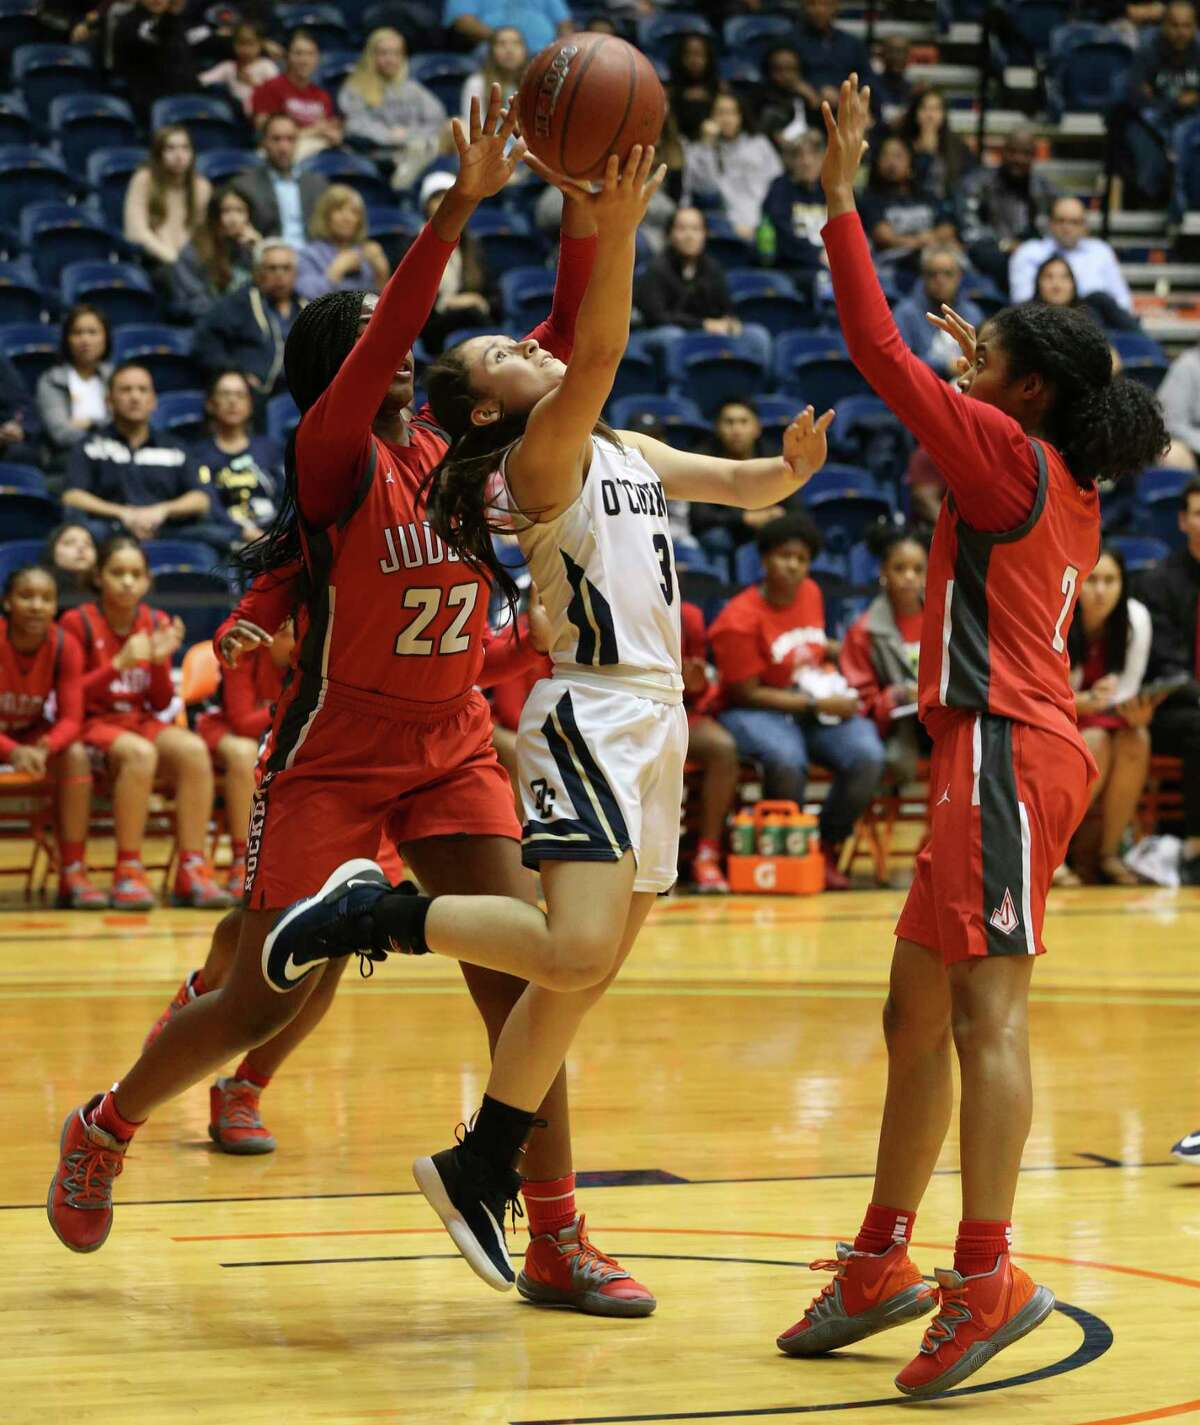 O'Connor's Julianna Tapia (03) attempts a score against Judson's Amira Mabry (22) and Teanna Huggins (02) during their Region IV Regional Quarterfinals game at UTSA on Tuesday, Feb. 25, 2020.